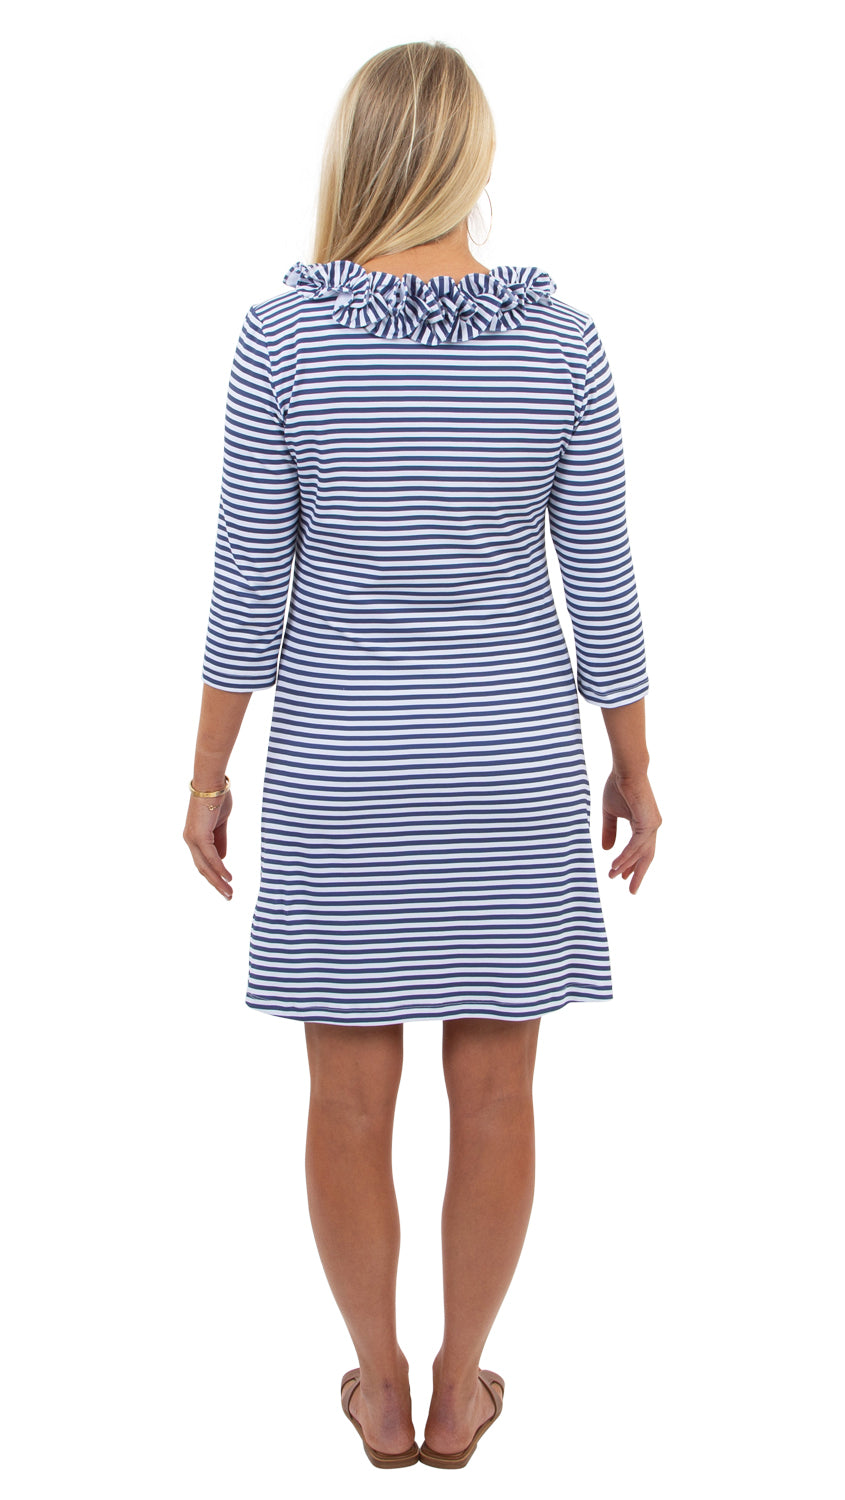 Cricket Dress 3/4 - Navy/White Stripe